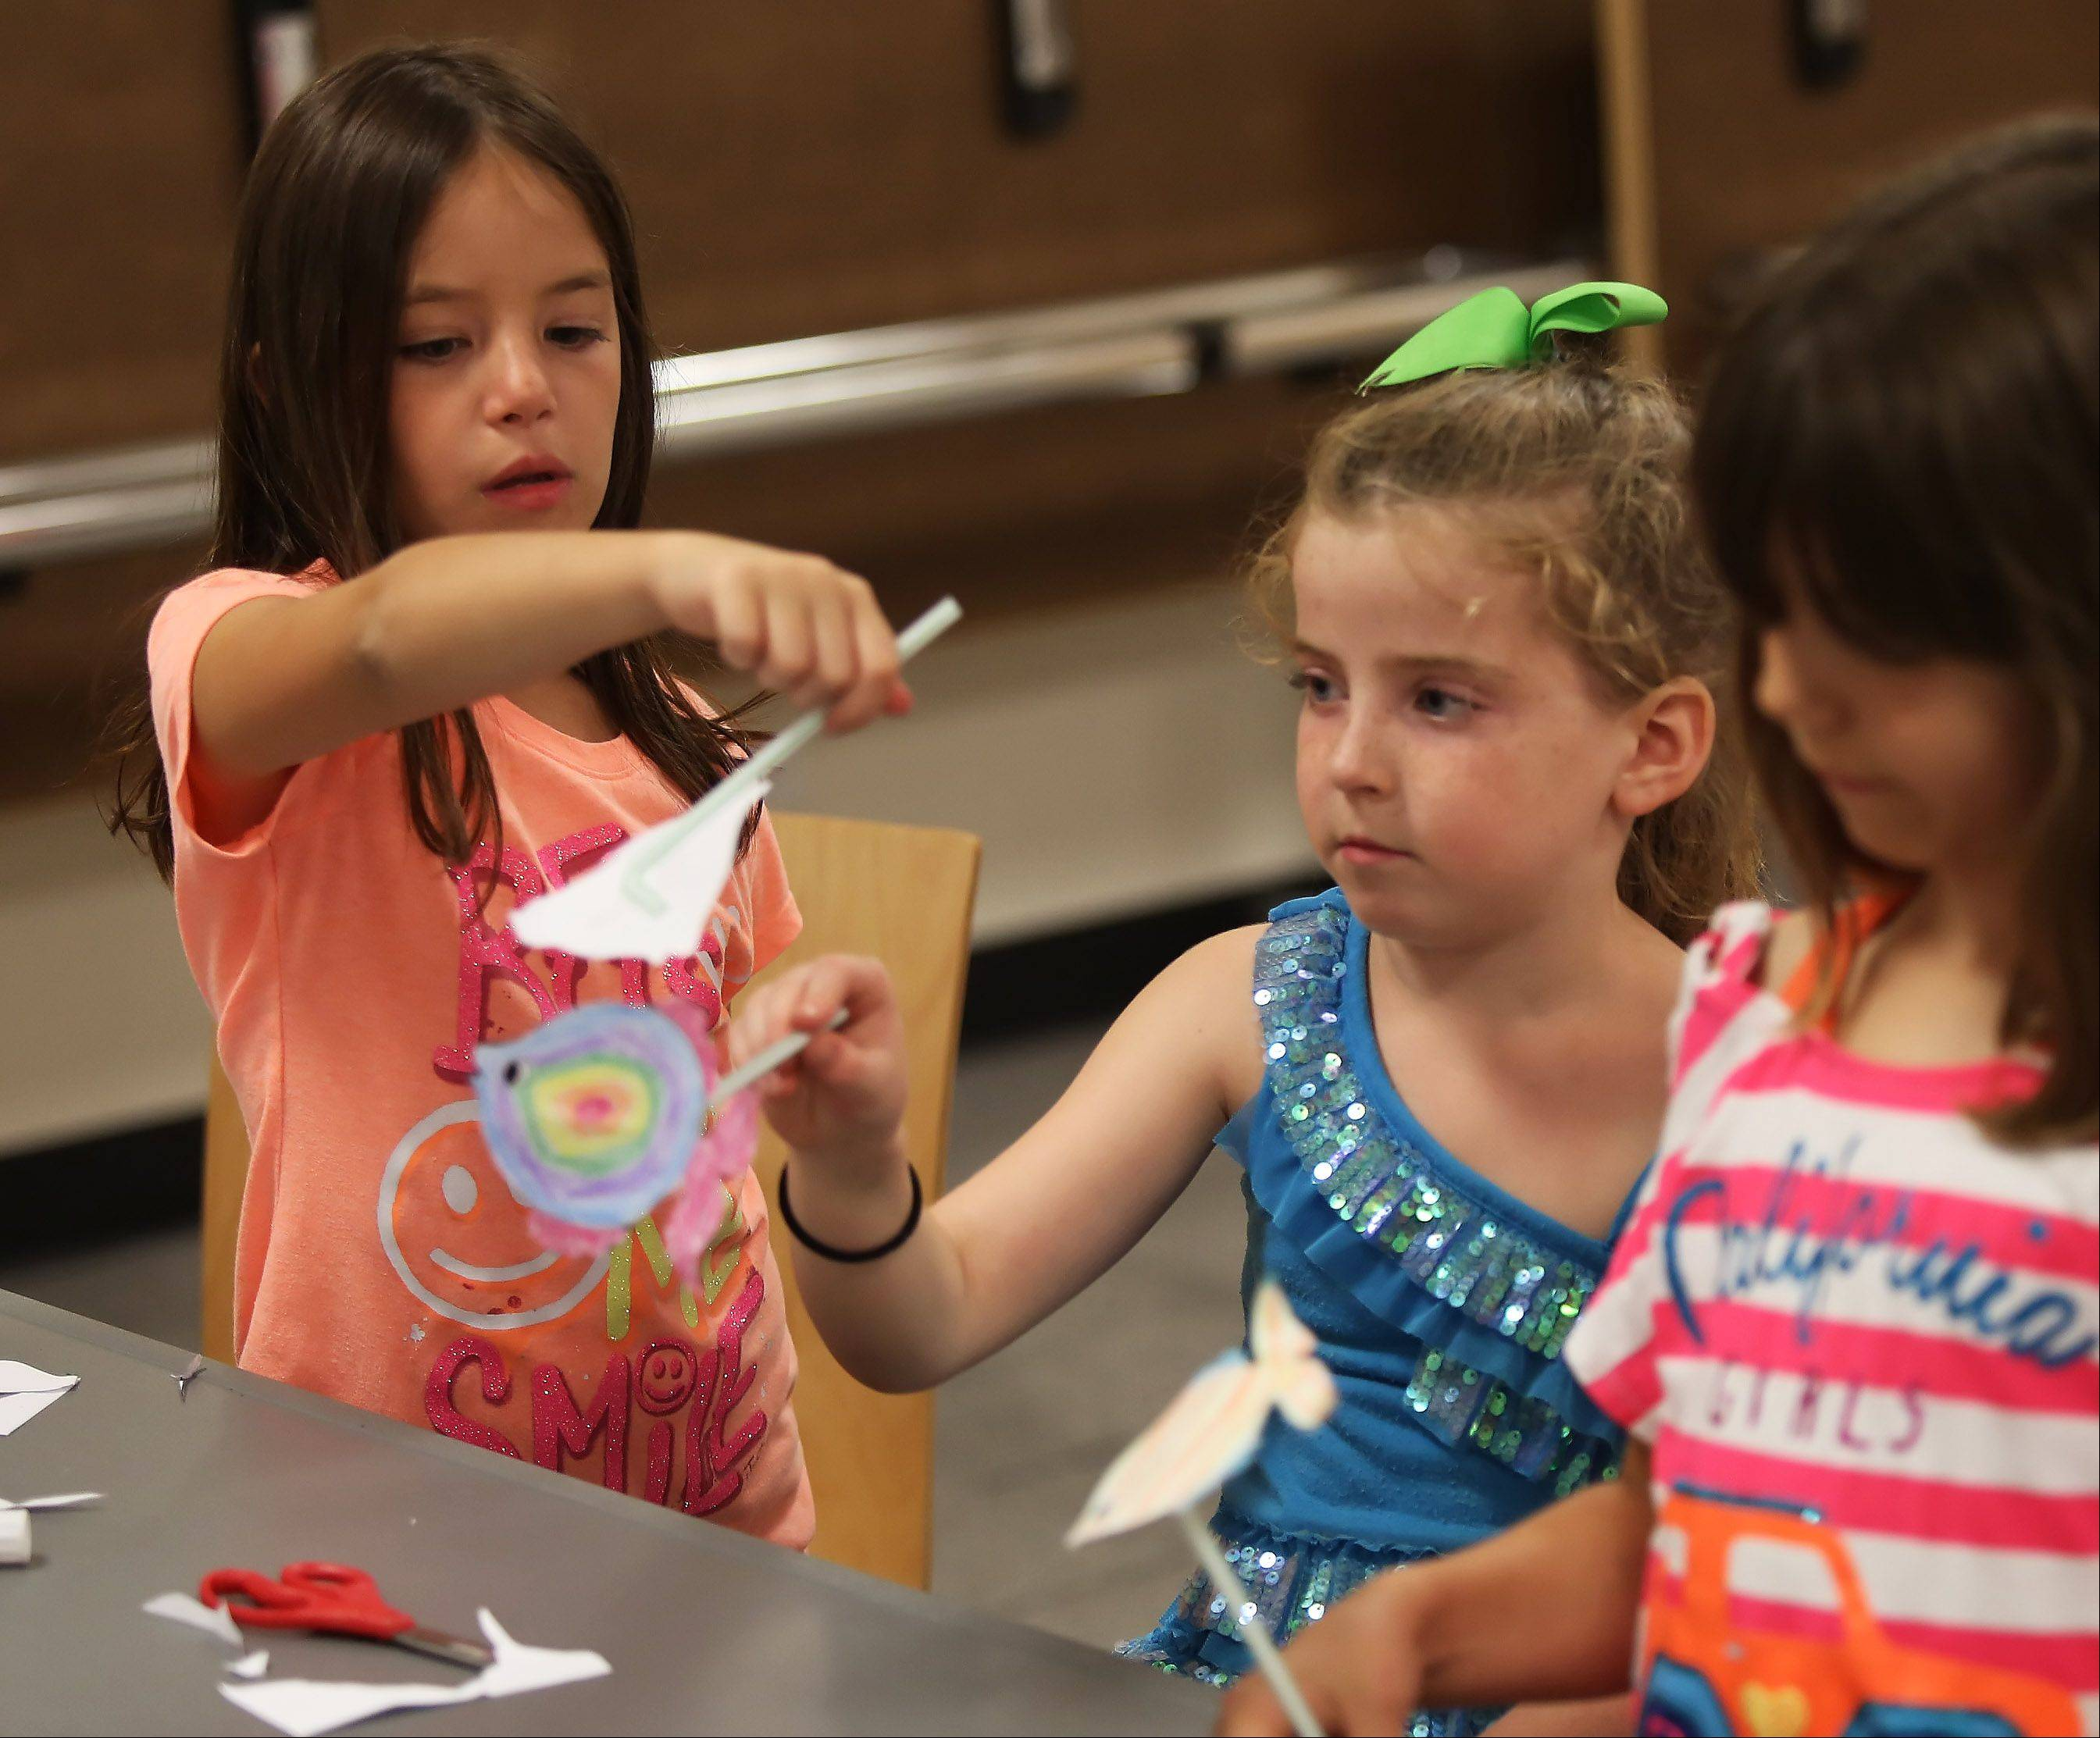 Seven-year-olds Zoe Joseph, left, and Ella Kennedy, both of Libertyville, play with the fish puppets they created during the puppet-making workshop Tuesday at the Cook Park Library in Libertyville. Children made shadow puppets and bag puppets under the direction of Mark Nichols, owner of The Puppet Place,